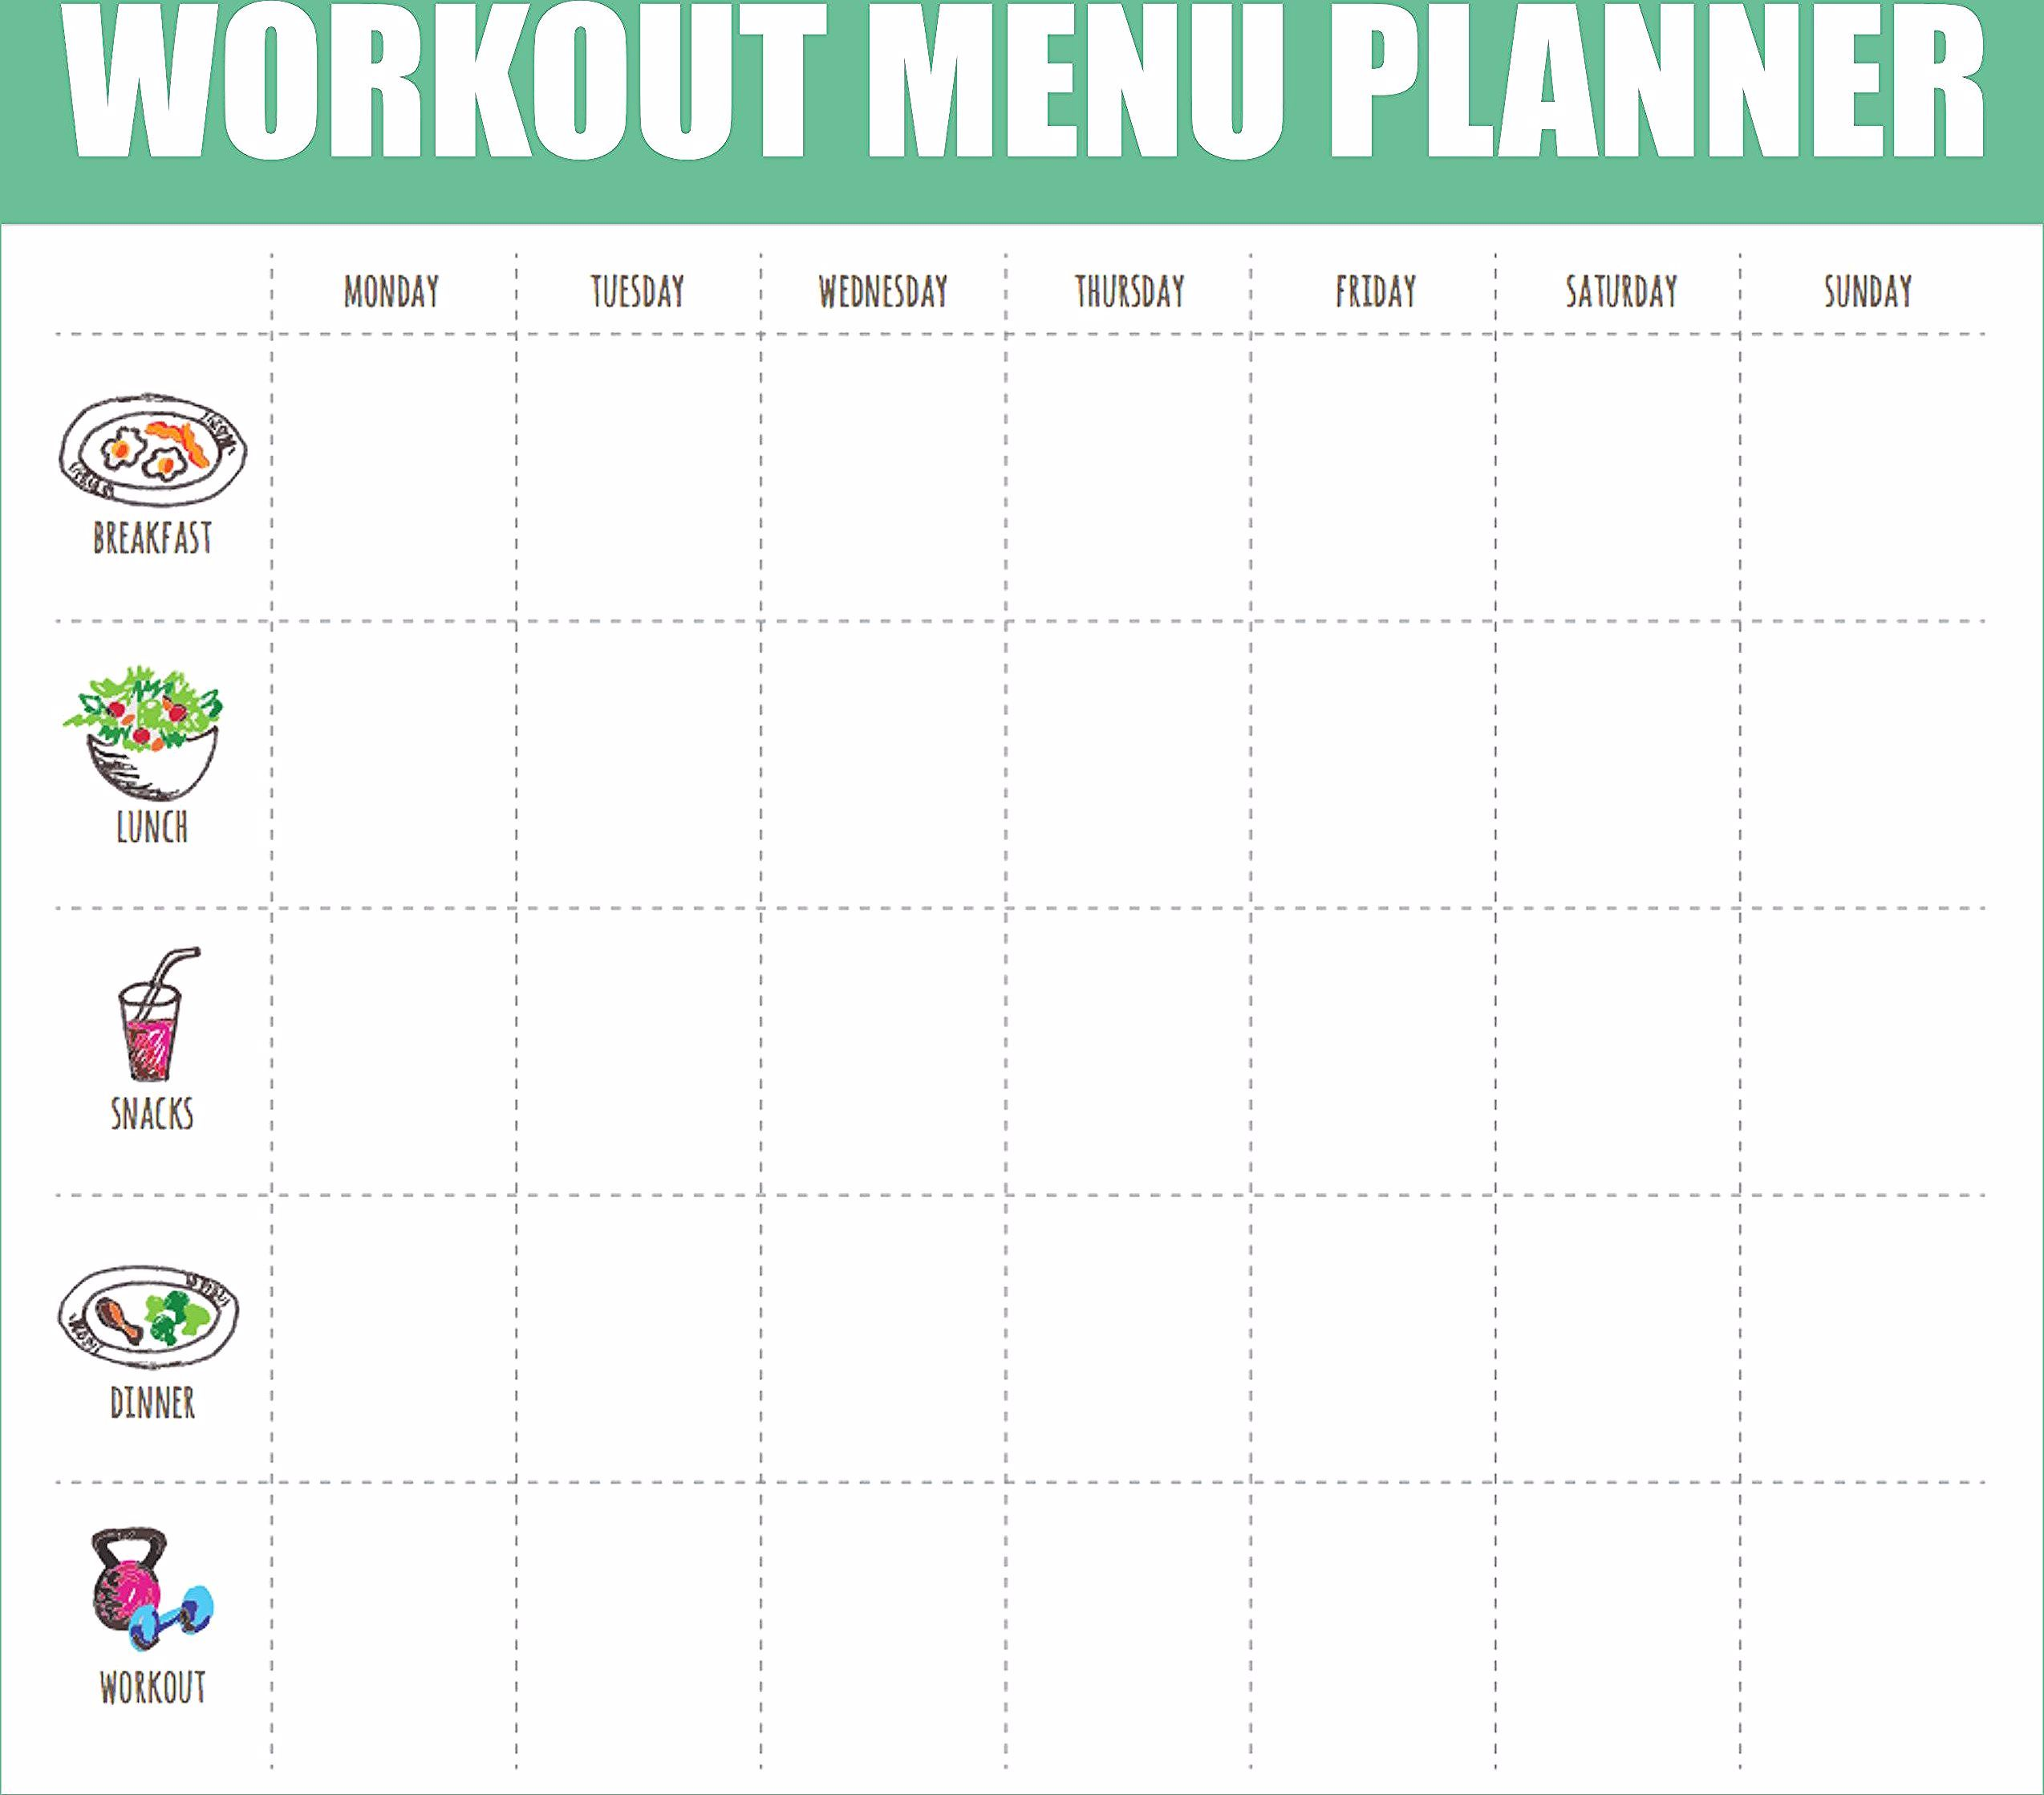 Meal Planner Printable | Workout Fitness Menu Planner + Grocery list, Fitness, W... - #Fitness #Groc...